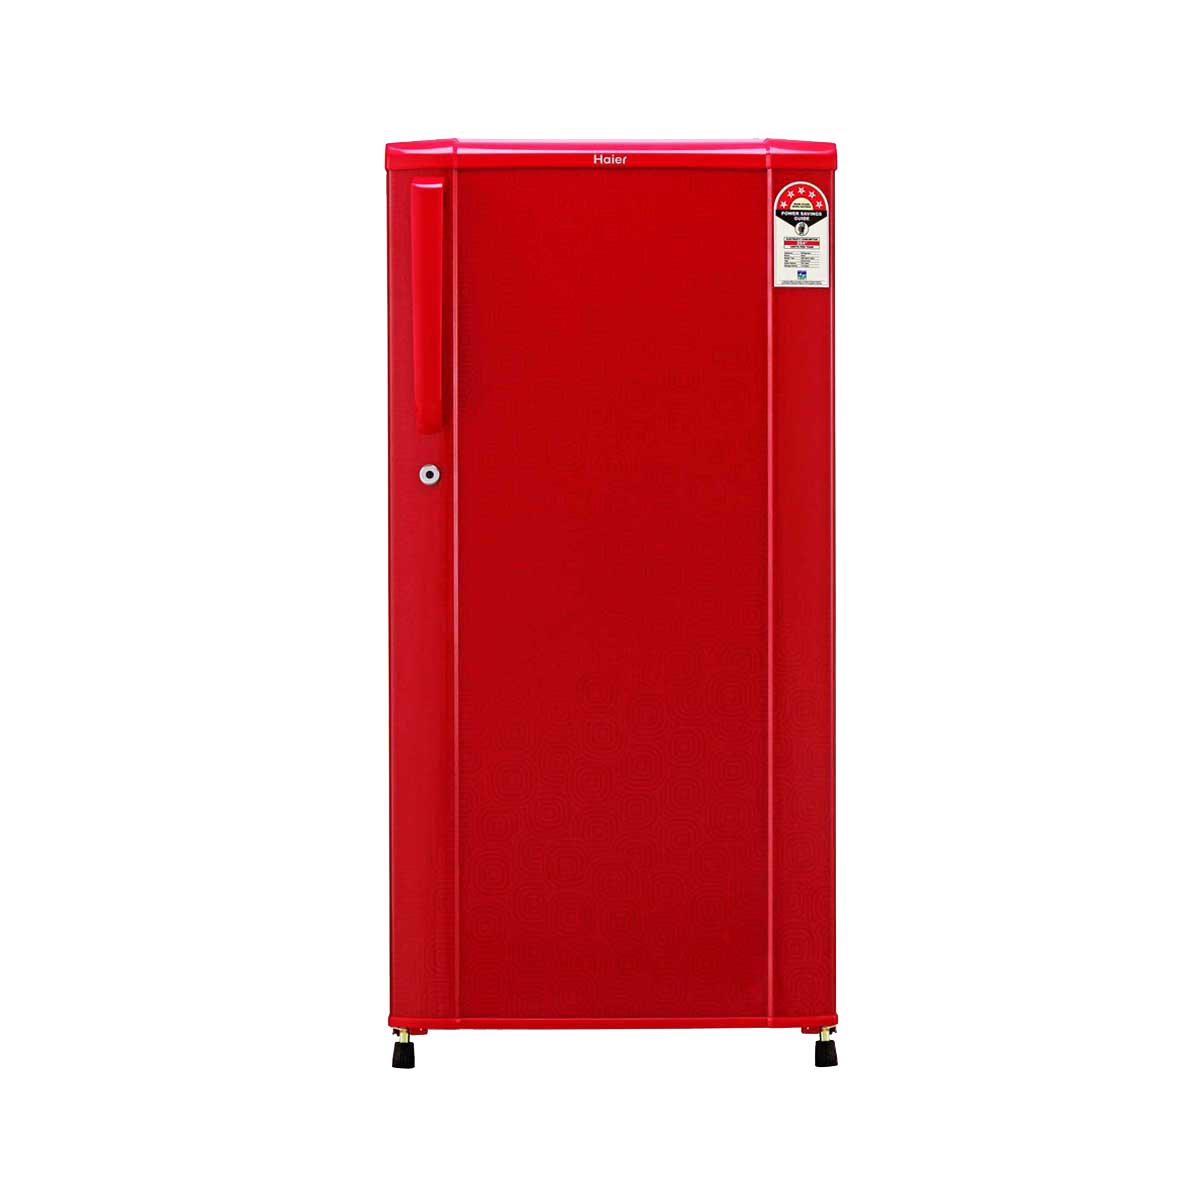 Single Door Refrigerator PNG Image - PNG Fridge